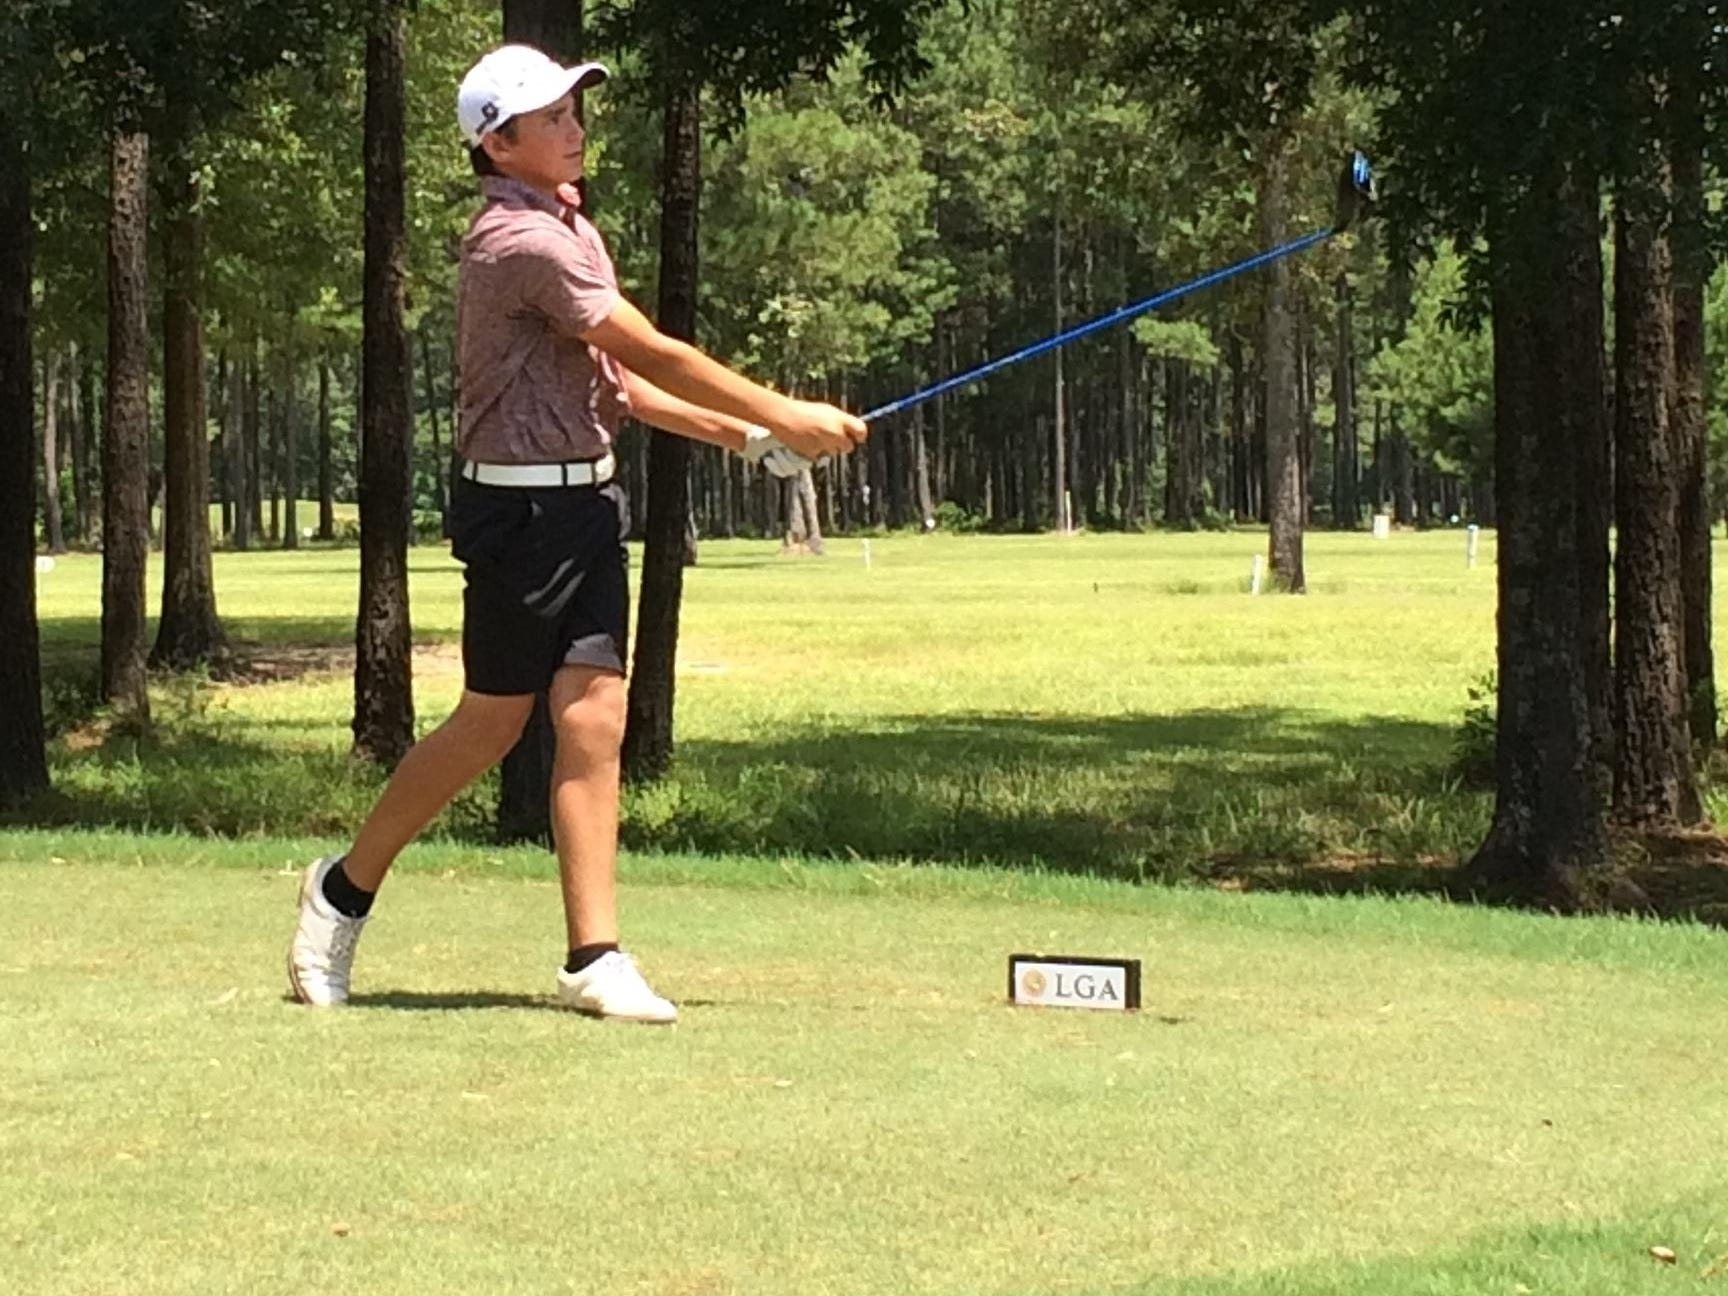 Menard sophomore Charlie Flynn tees off on a hole during Friday's final round at the Louisiana Golf Association Junior Amateur Championship in Springfield. Flynn shot a second straight 2-over-par 74 to finish in a tie for 12th place.